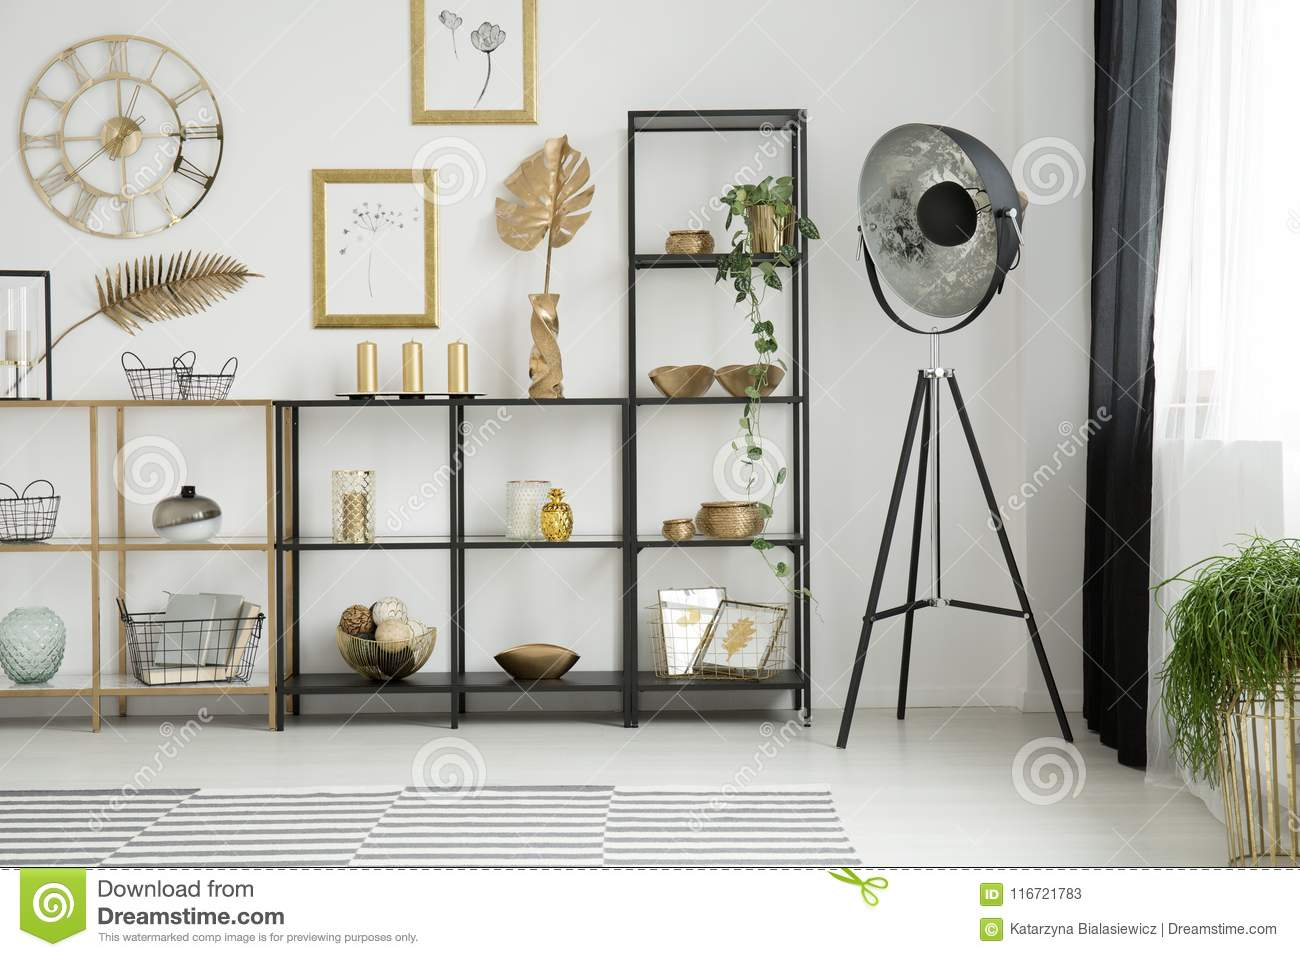 Gold living room interior stock image. Image of gallery - 116721783